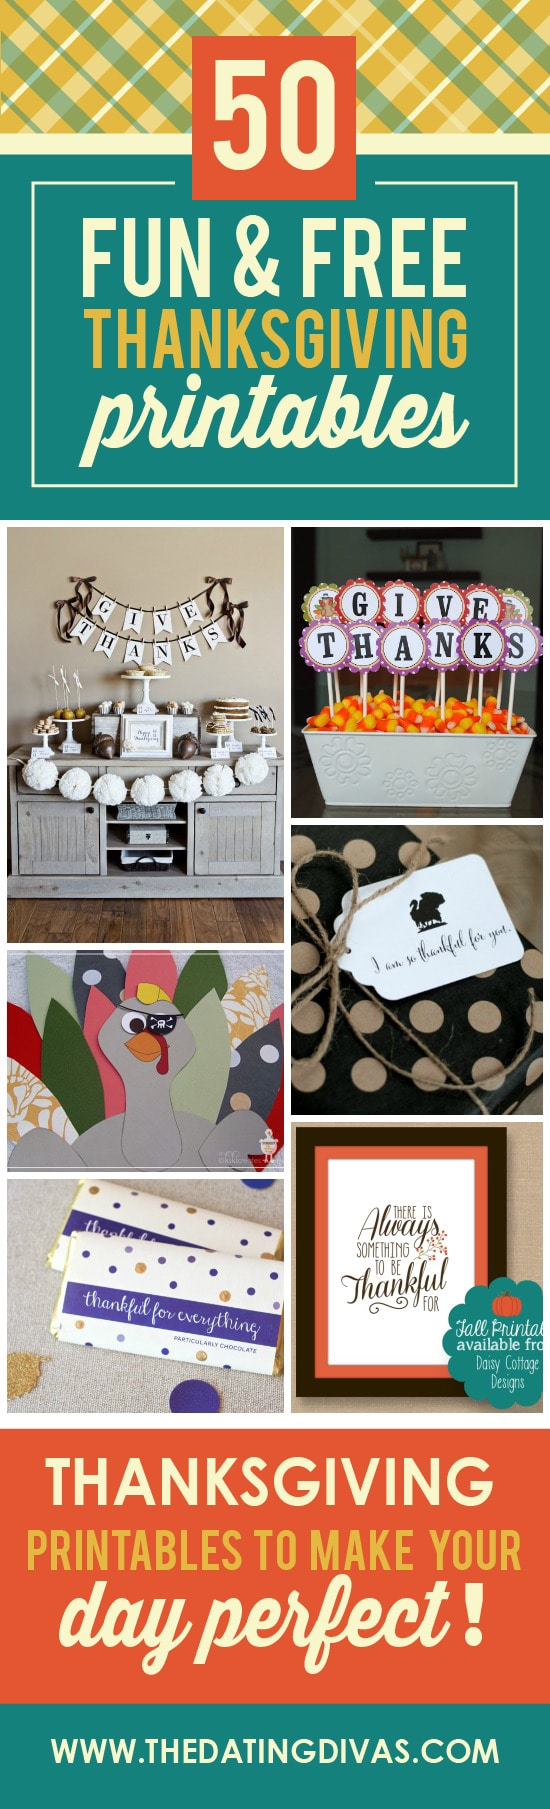 50 fun thanksgiving printables